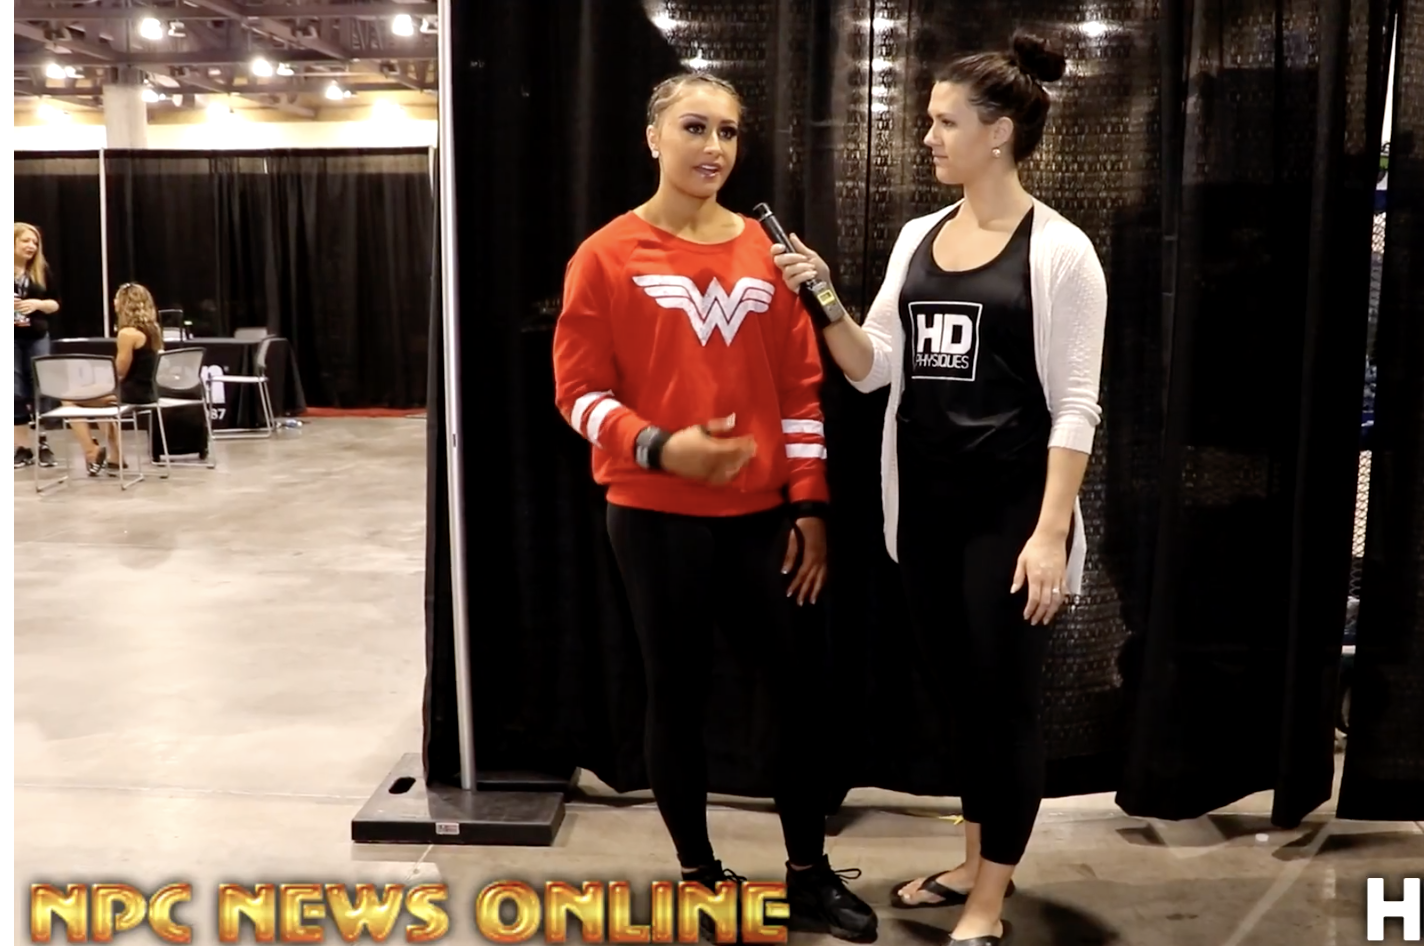 2017 NPC Phoenix Europa Interview With IFBB Fitness Pro Nicole Neargarder